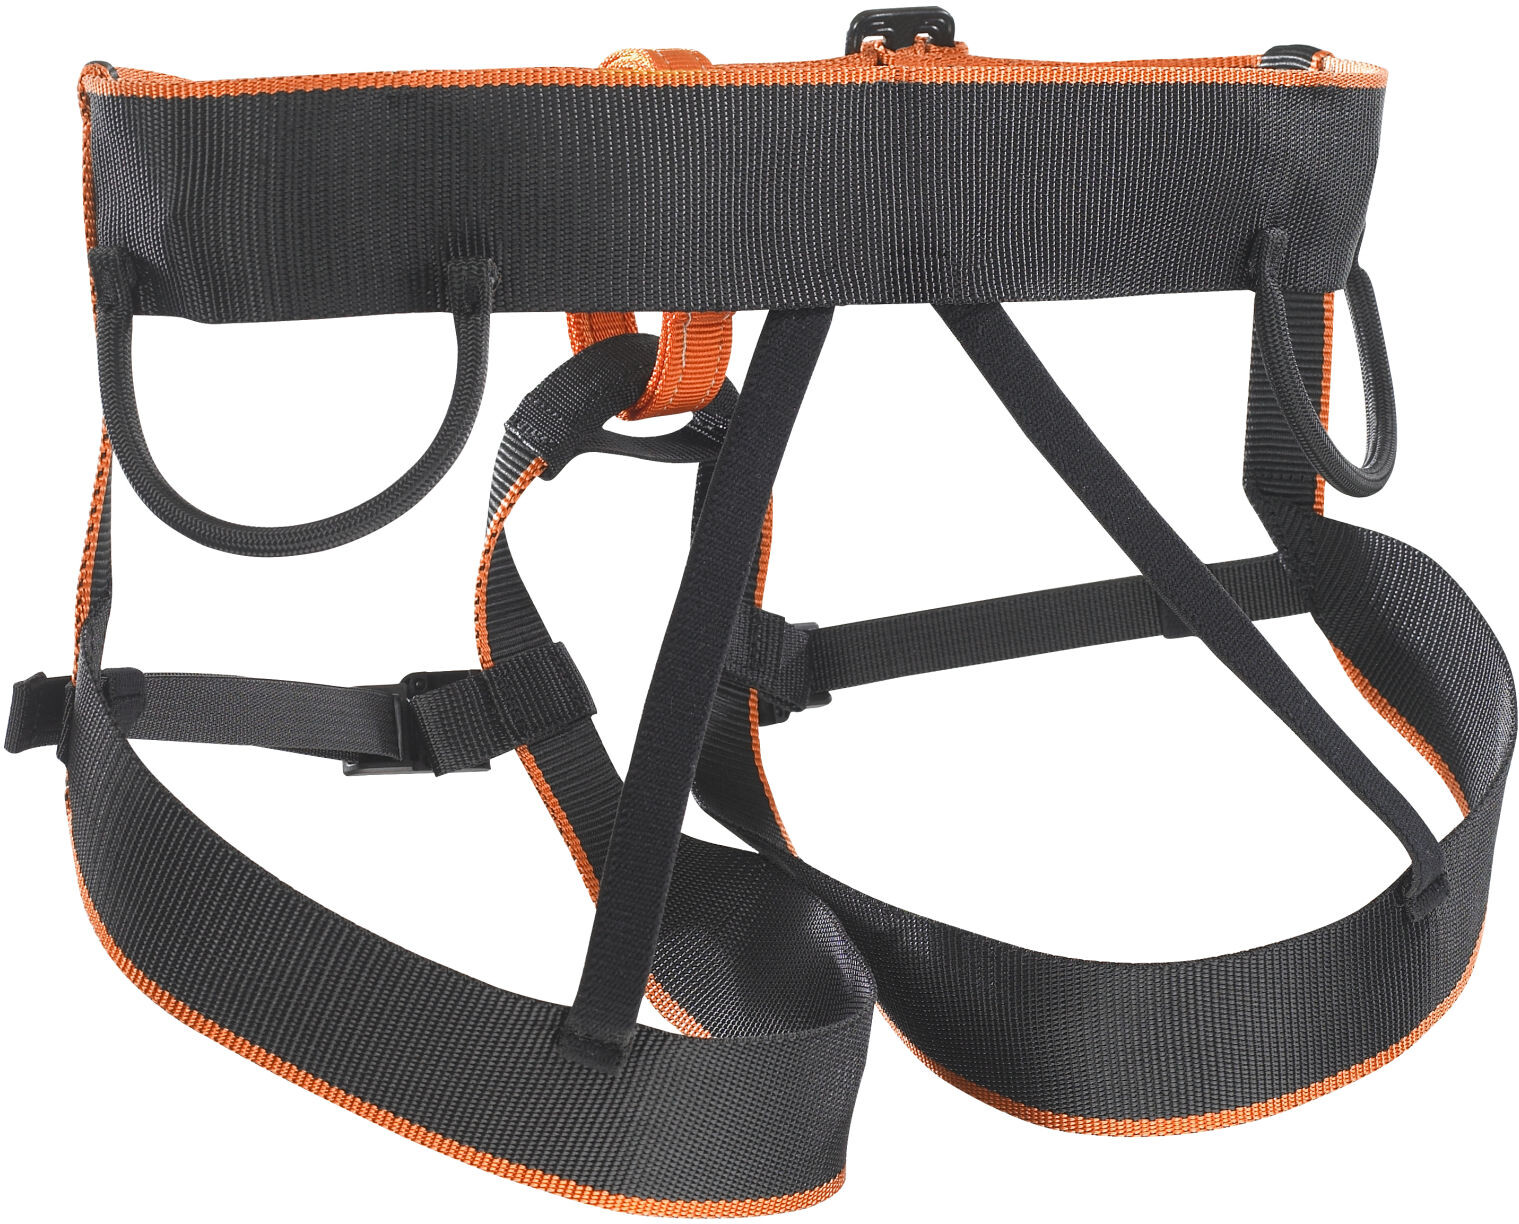 Skylotec Klettergurt Preis : Skylotec pyrit harness black orange campz